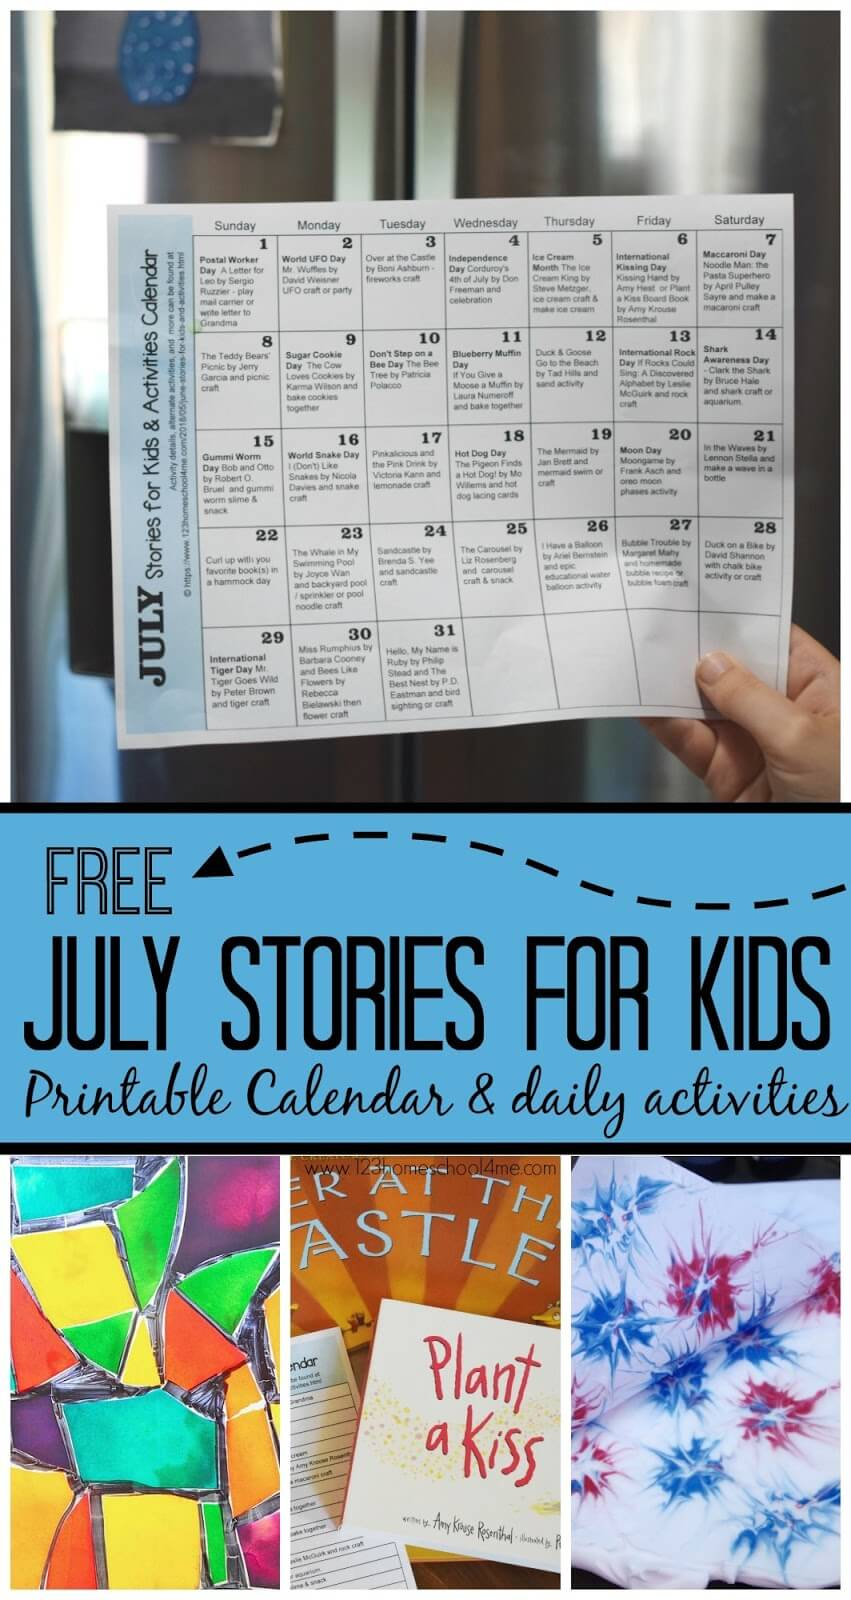 July Stories for Kids - this is such a fun, low prep activity guide for families. Just print calendar, check out the featured books, and do one of the clever, fun kids activities included. This is perfect for summer bucket list to keep kids engaged, easy activities, and keep reading good books through a variety of holidays, special days, and topics.(fireworks crafts, macaroni craft, kiss craft, 4th of july crafts, independence day for kids, ice cream crafts, beach crafts, snake crafts, and more) #storiesforkids #julyactivitycalendar #summerstories